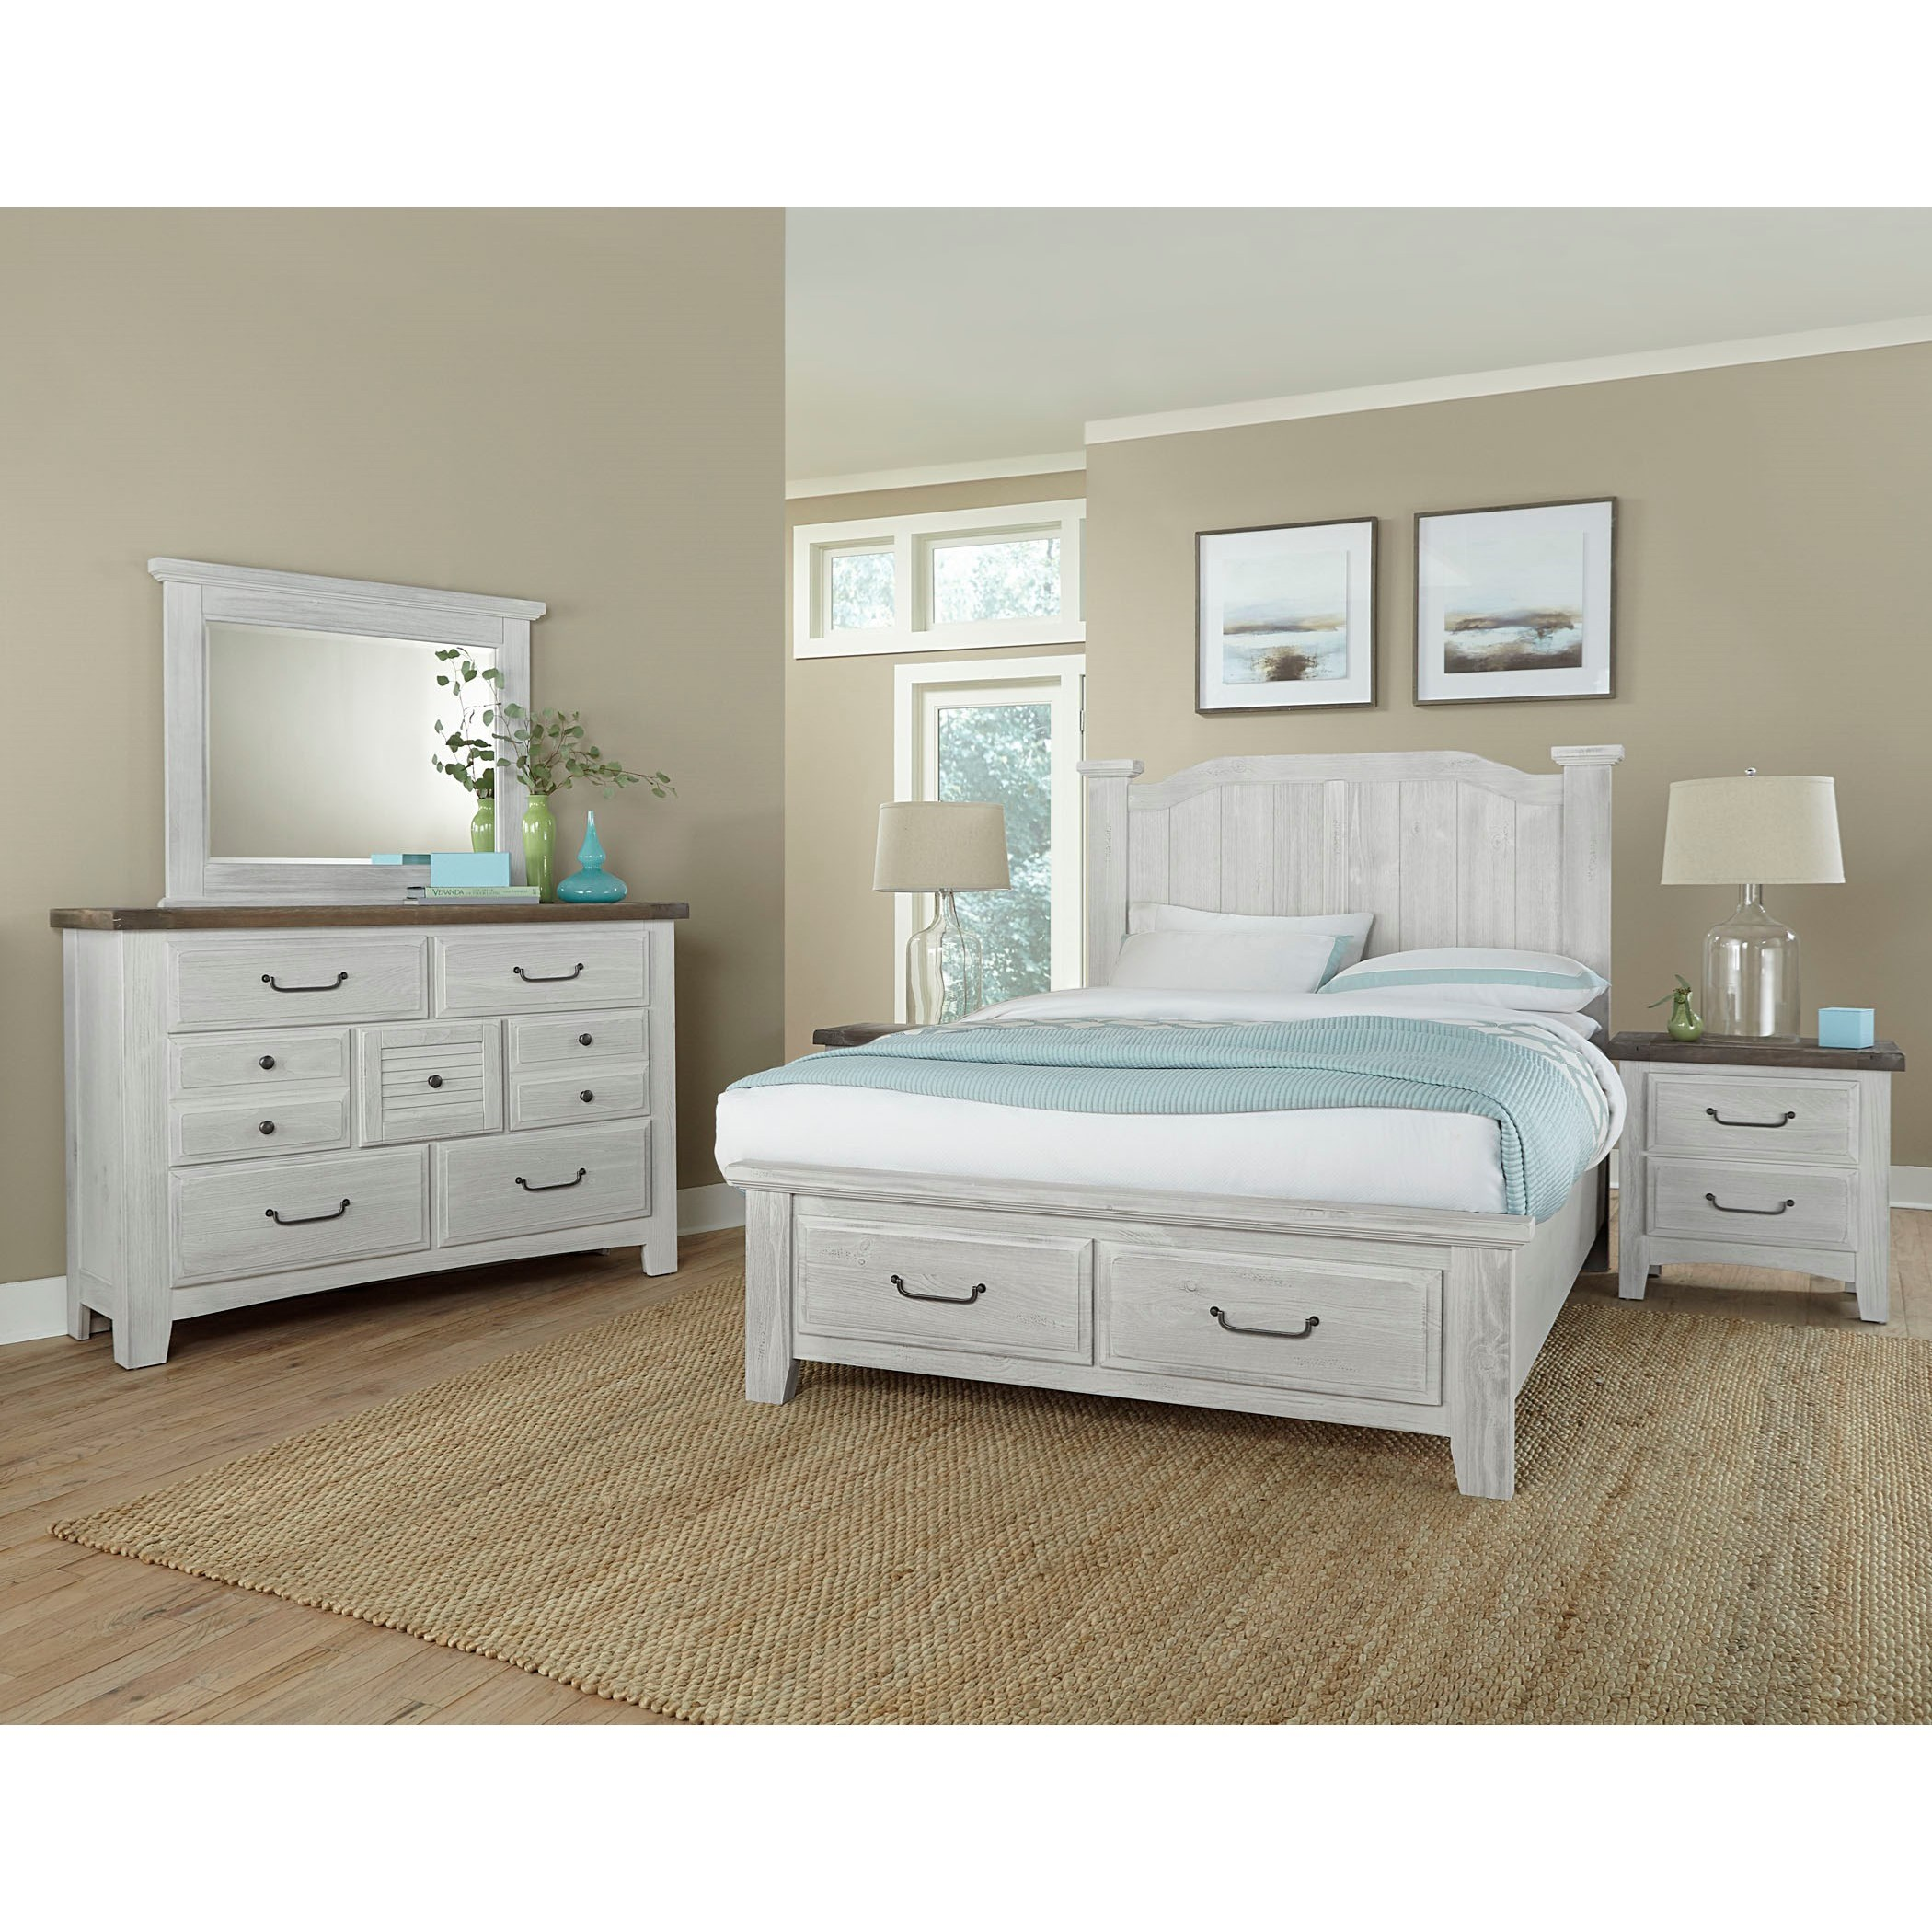 Sawmill King Bedroom Group by Vaughan Bassett at Gill Brothers Furniture